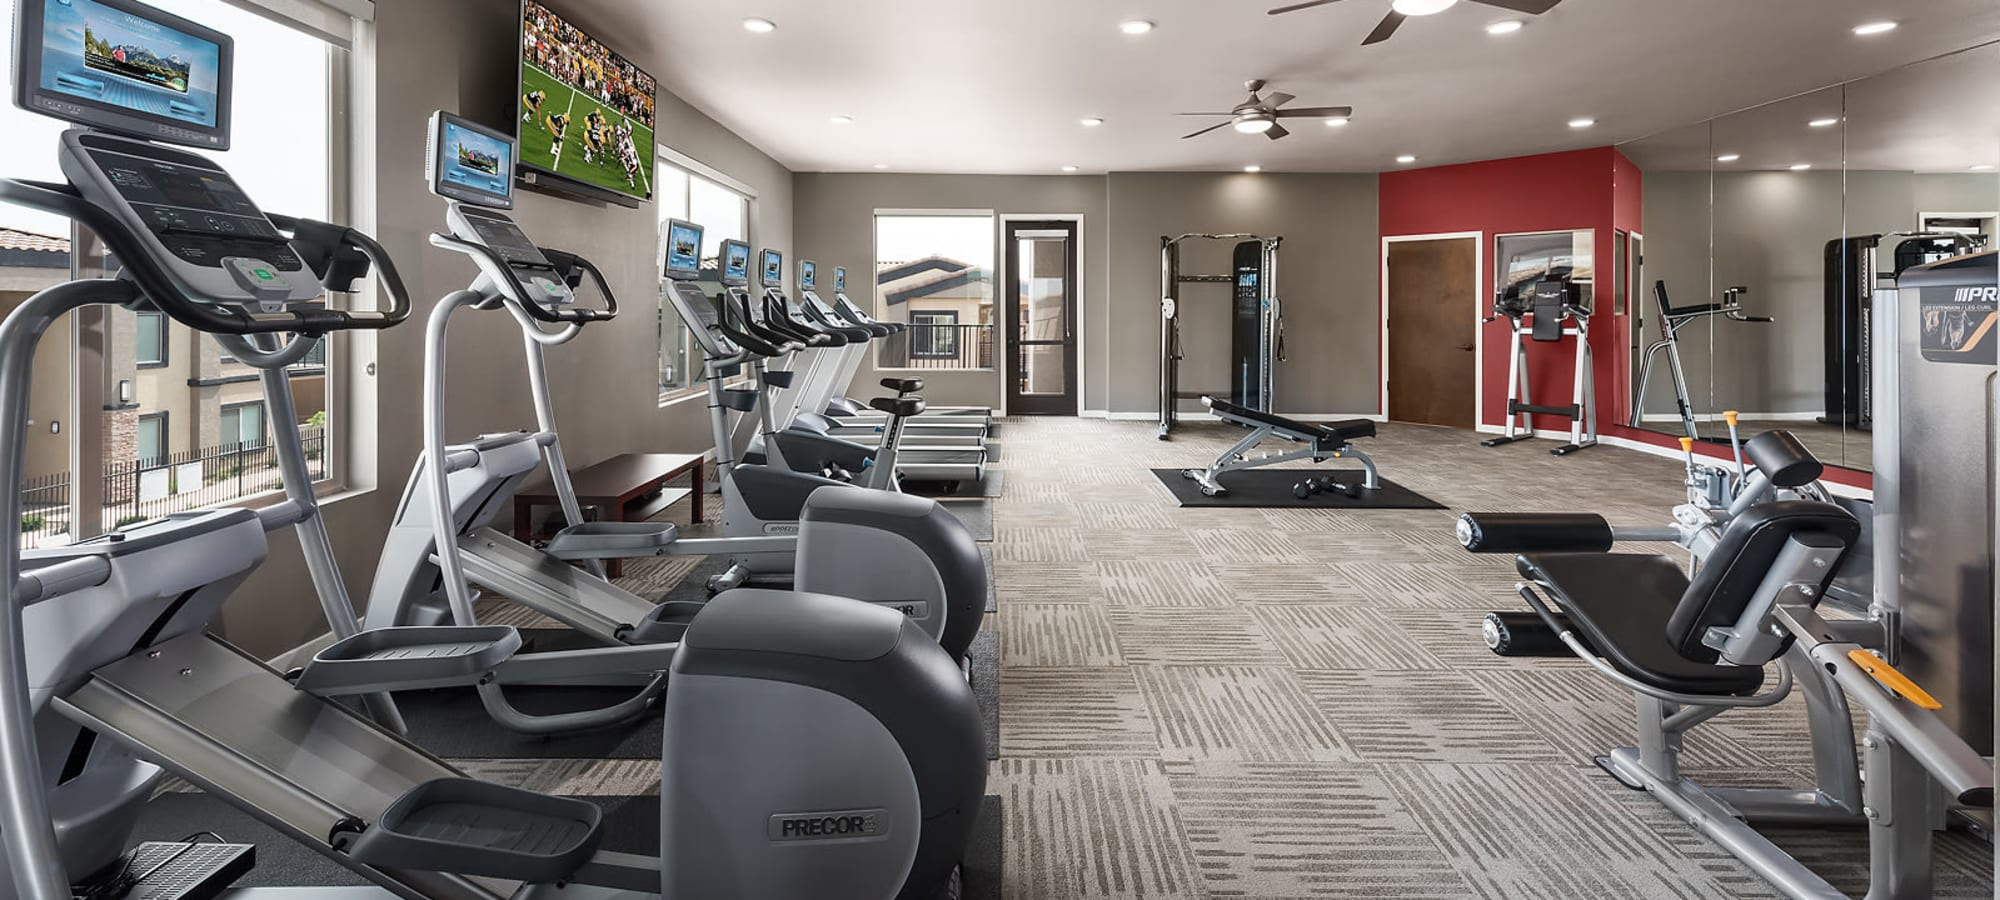 Community gym at The Maxx 159 in Goodyear, Arizona